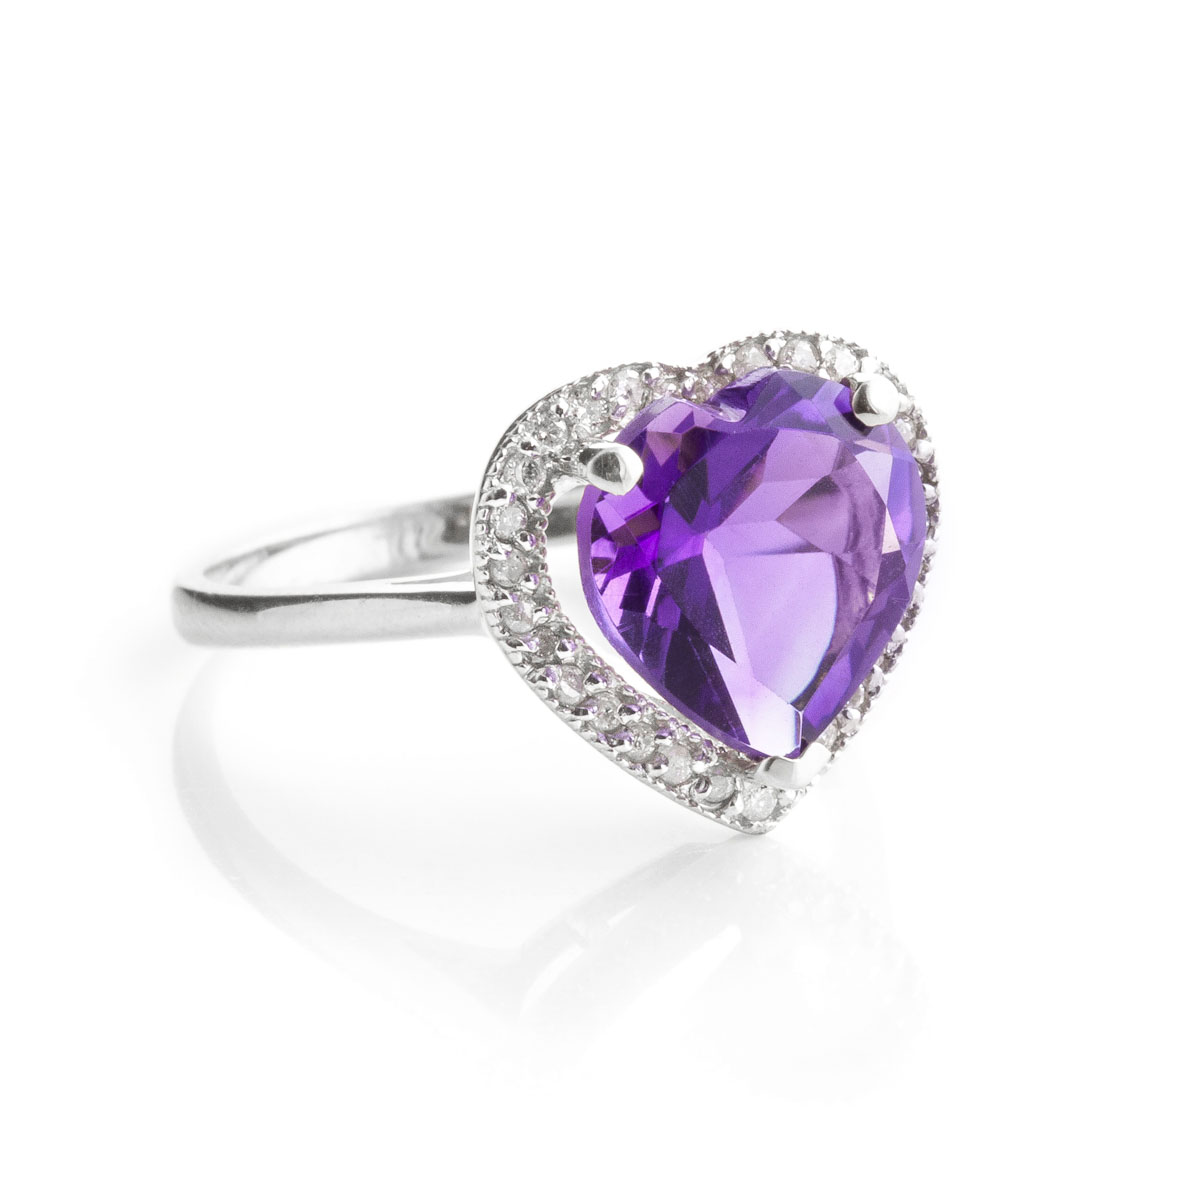 Amethyst Halo Ring 3.24 ctw in 9ct White Gold